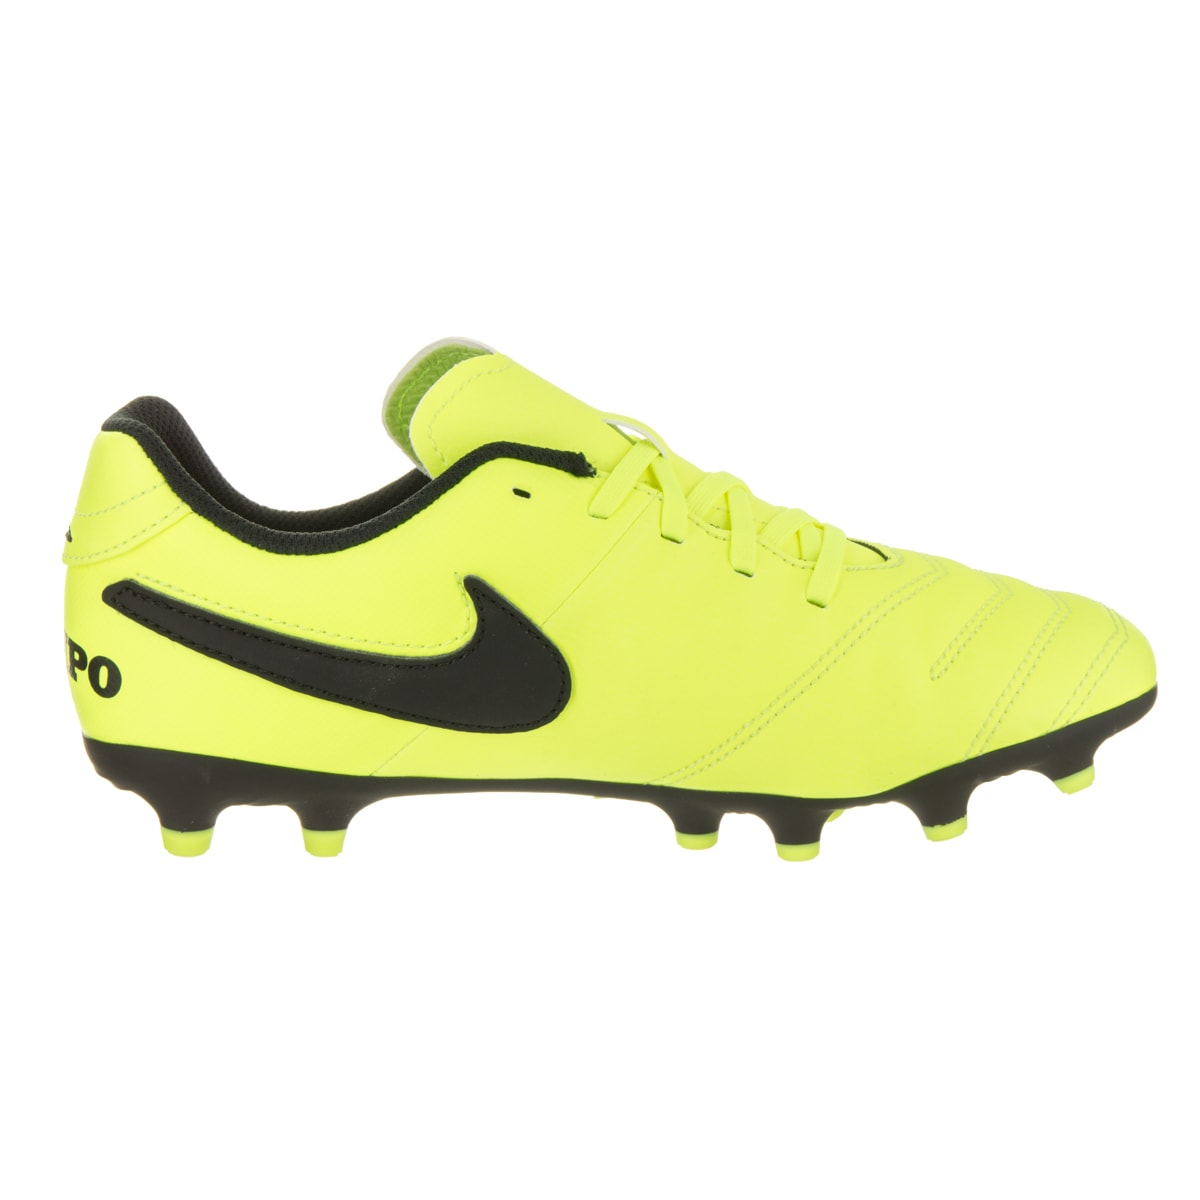 ae0a933a999 Shop Nike Kids JR Tiempo Rio III Fg Soccer Cleat - Free Shipping On Orders  Over  45 - Overstock - 15858502